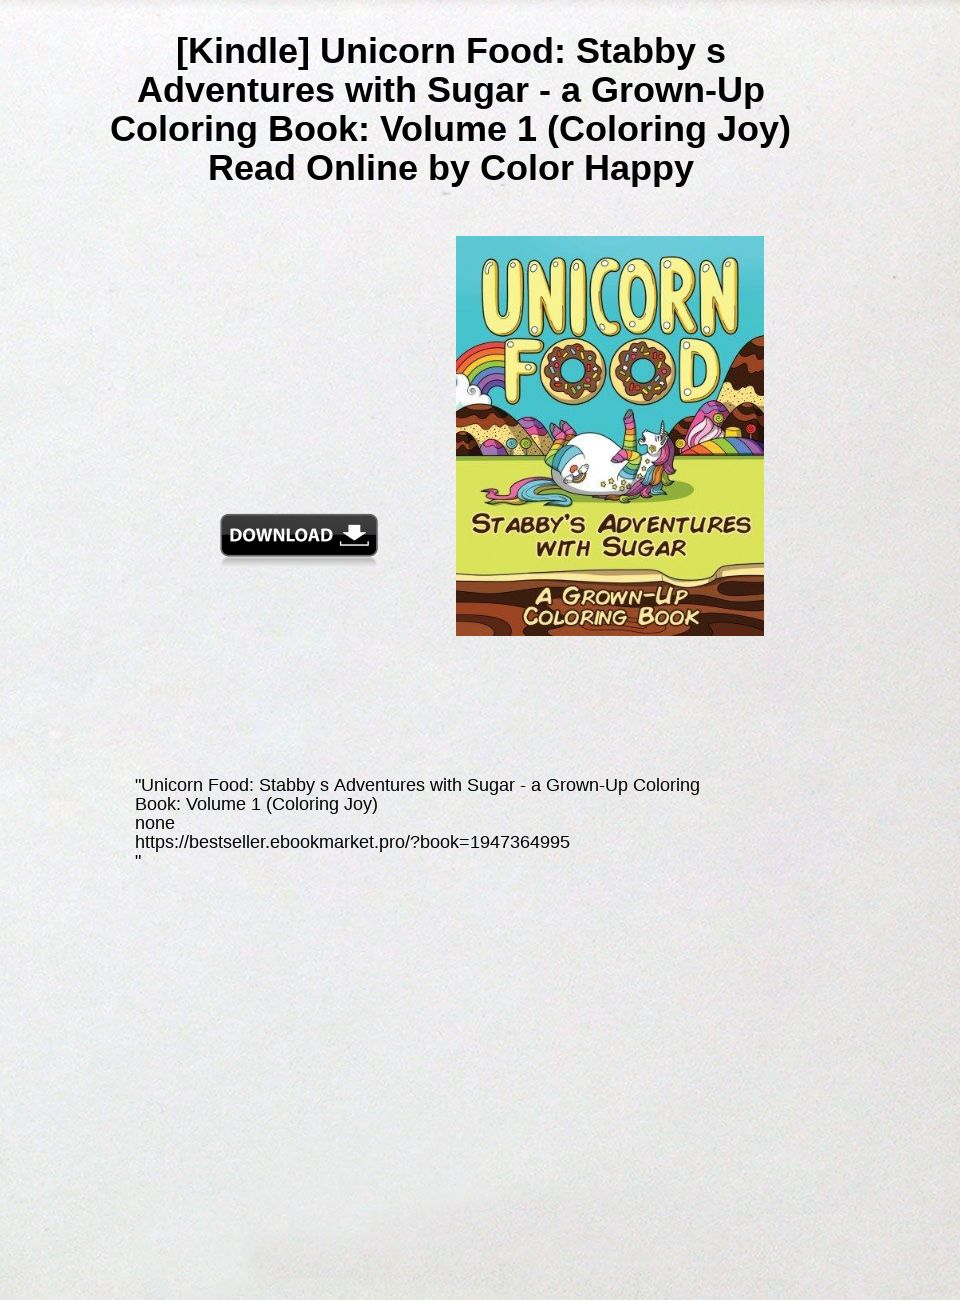 Unicorn Food Stabbys Adventures with Sugar a Grown-Up Coloring Book